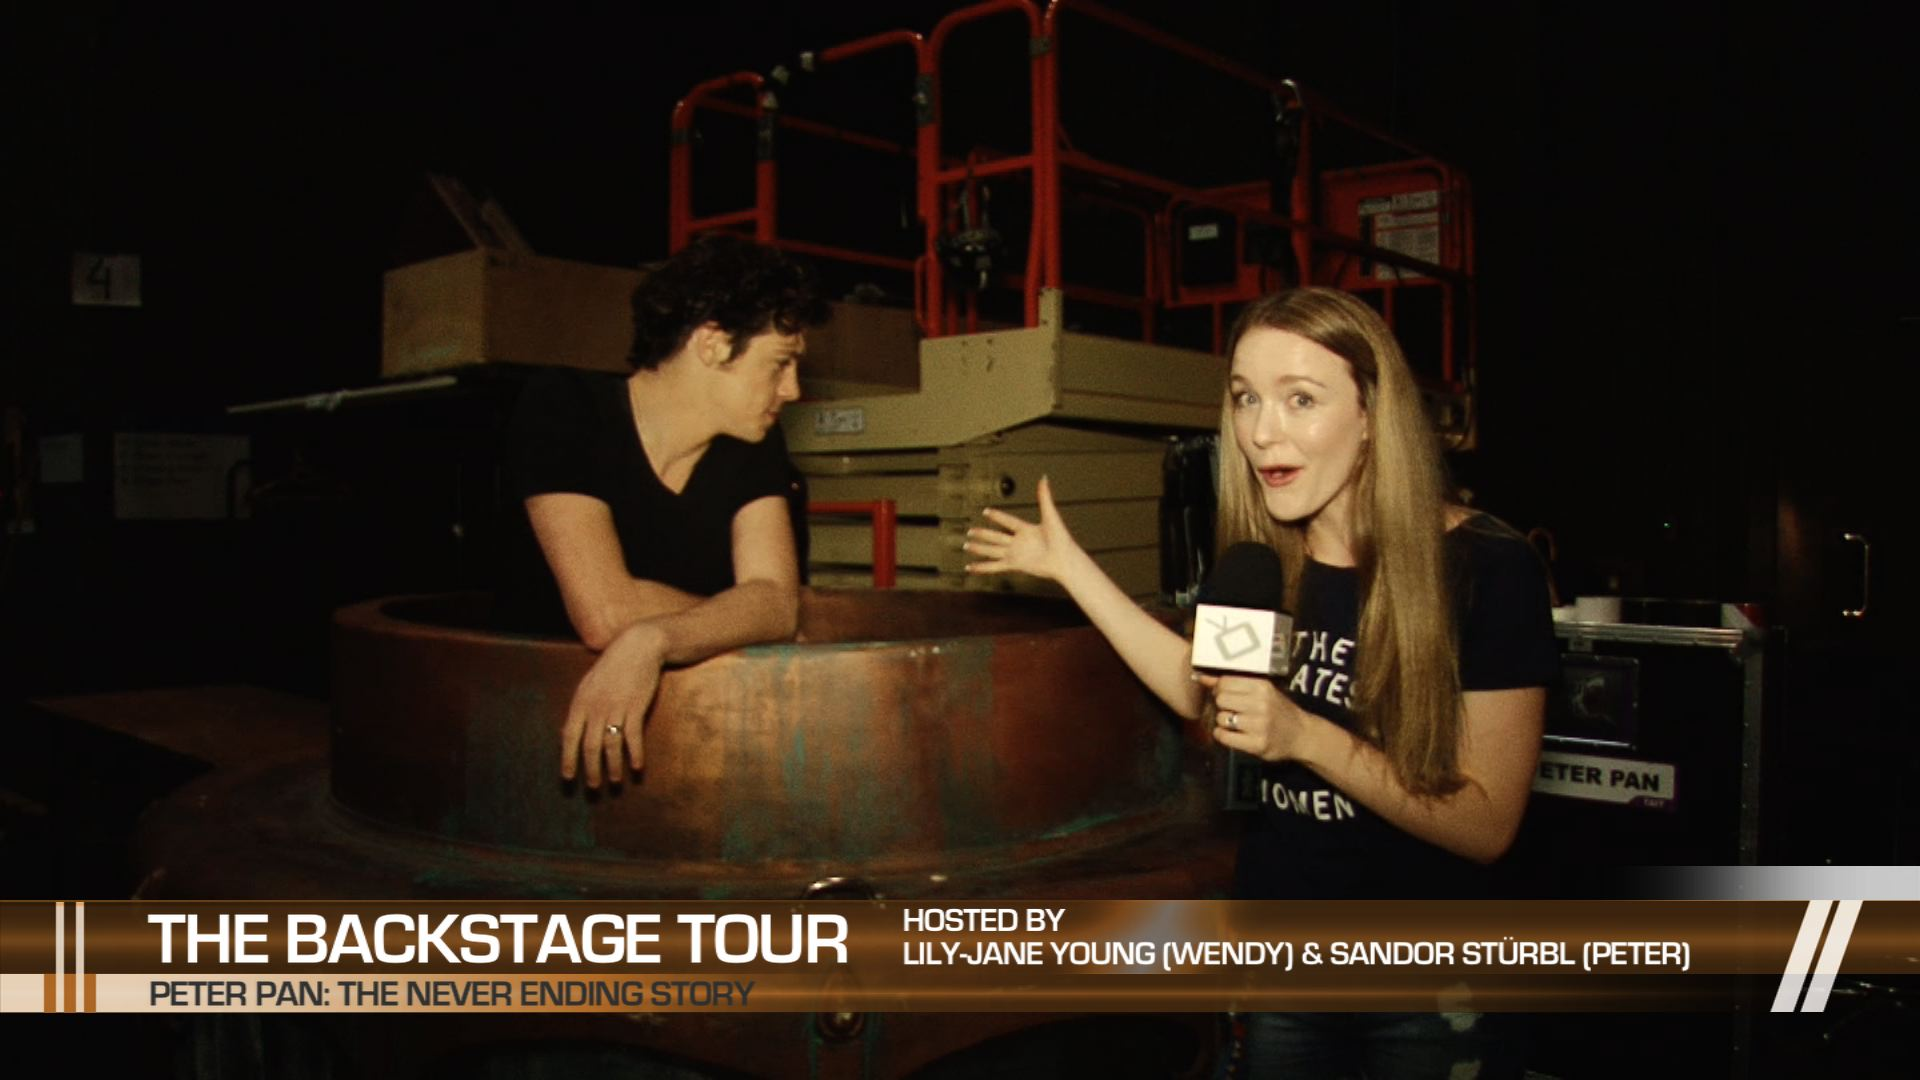 [Behind-the-scenes] Peter Pan: The Never Ending Story – Backstage Tour